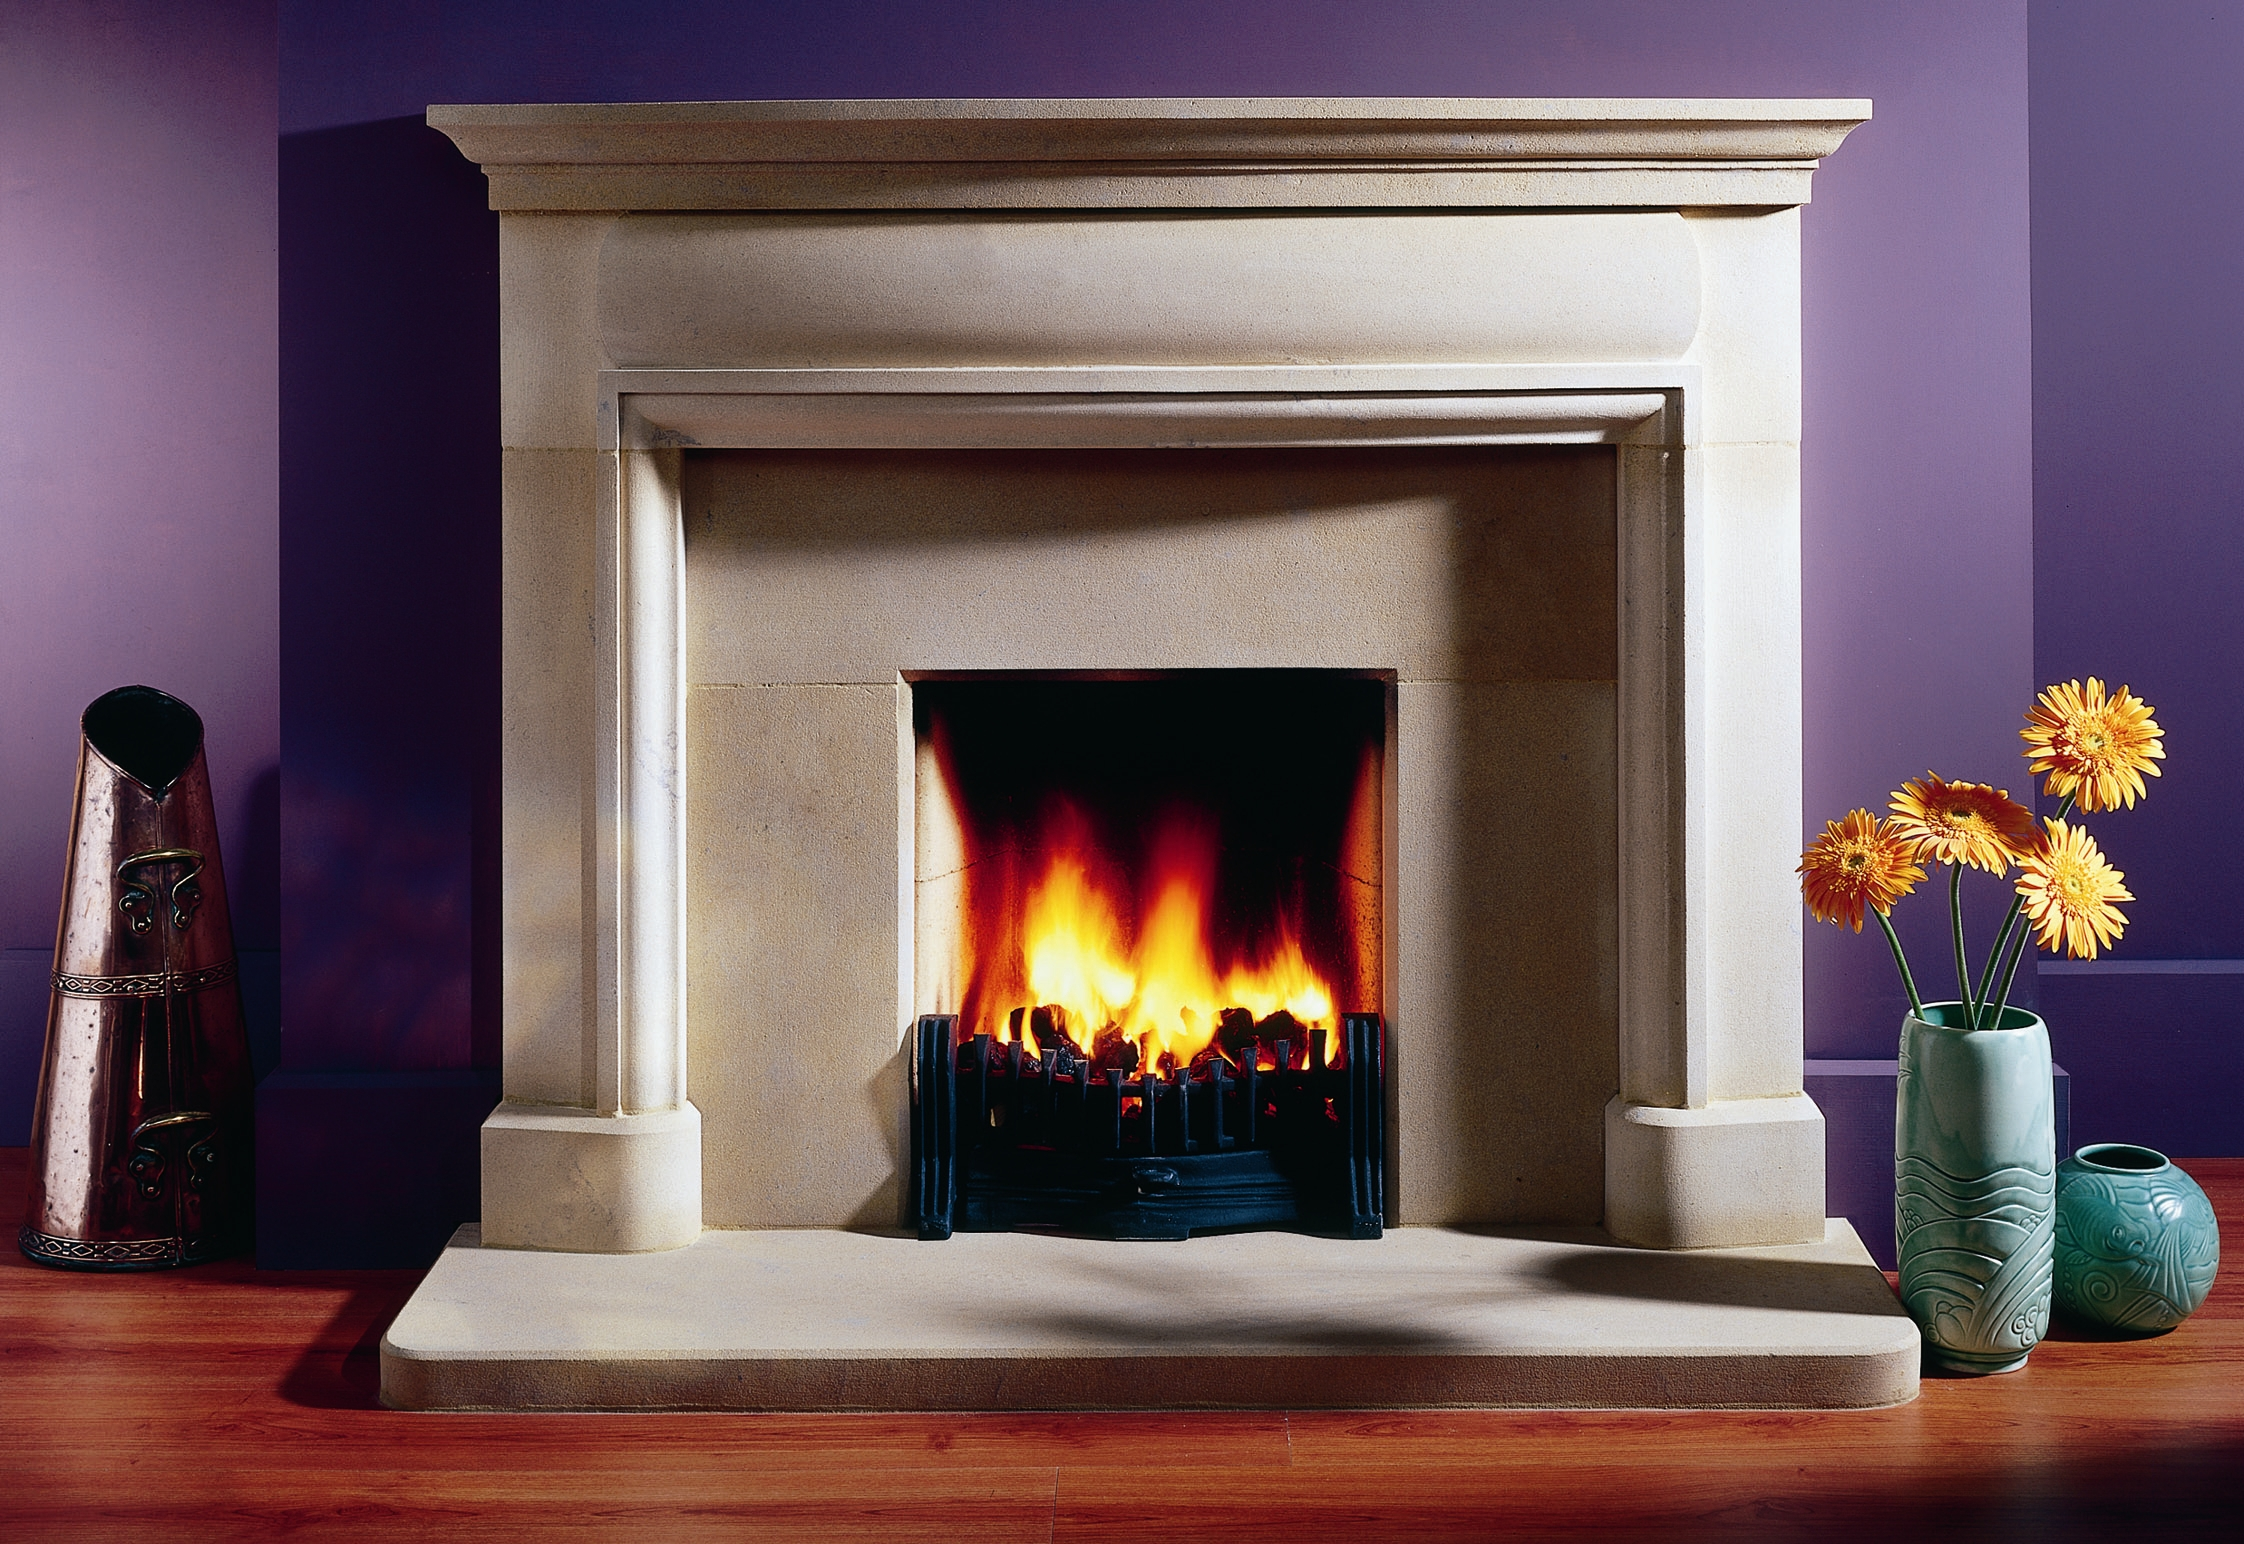 10. Classical Bathstone fireplace – Notting Hill